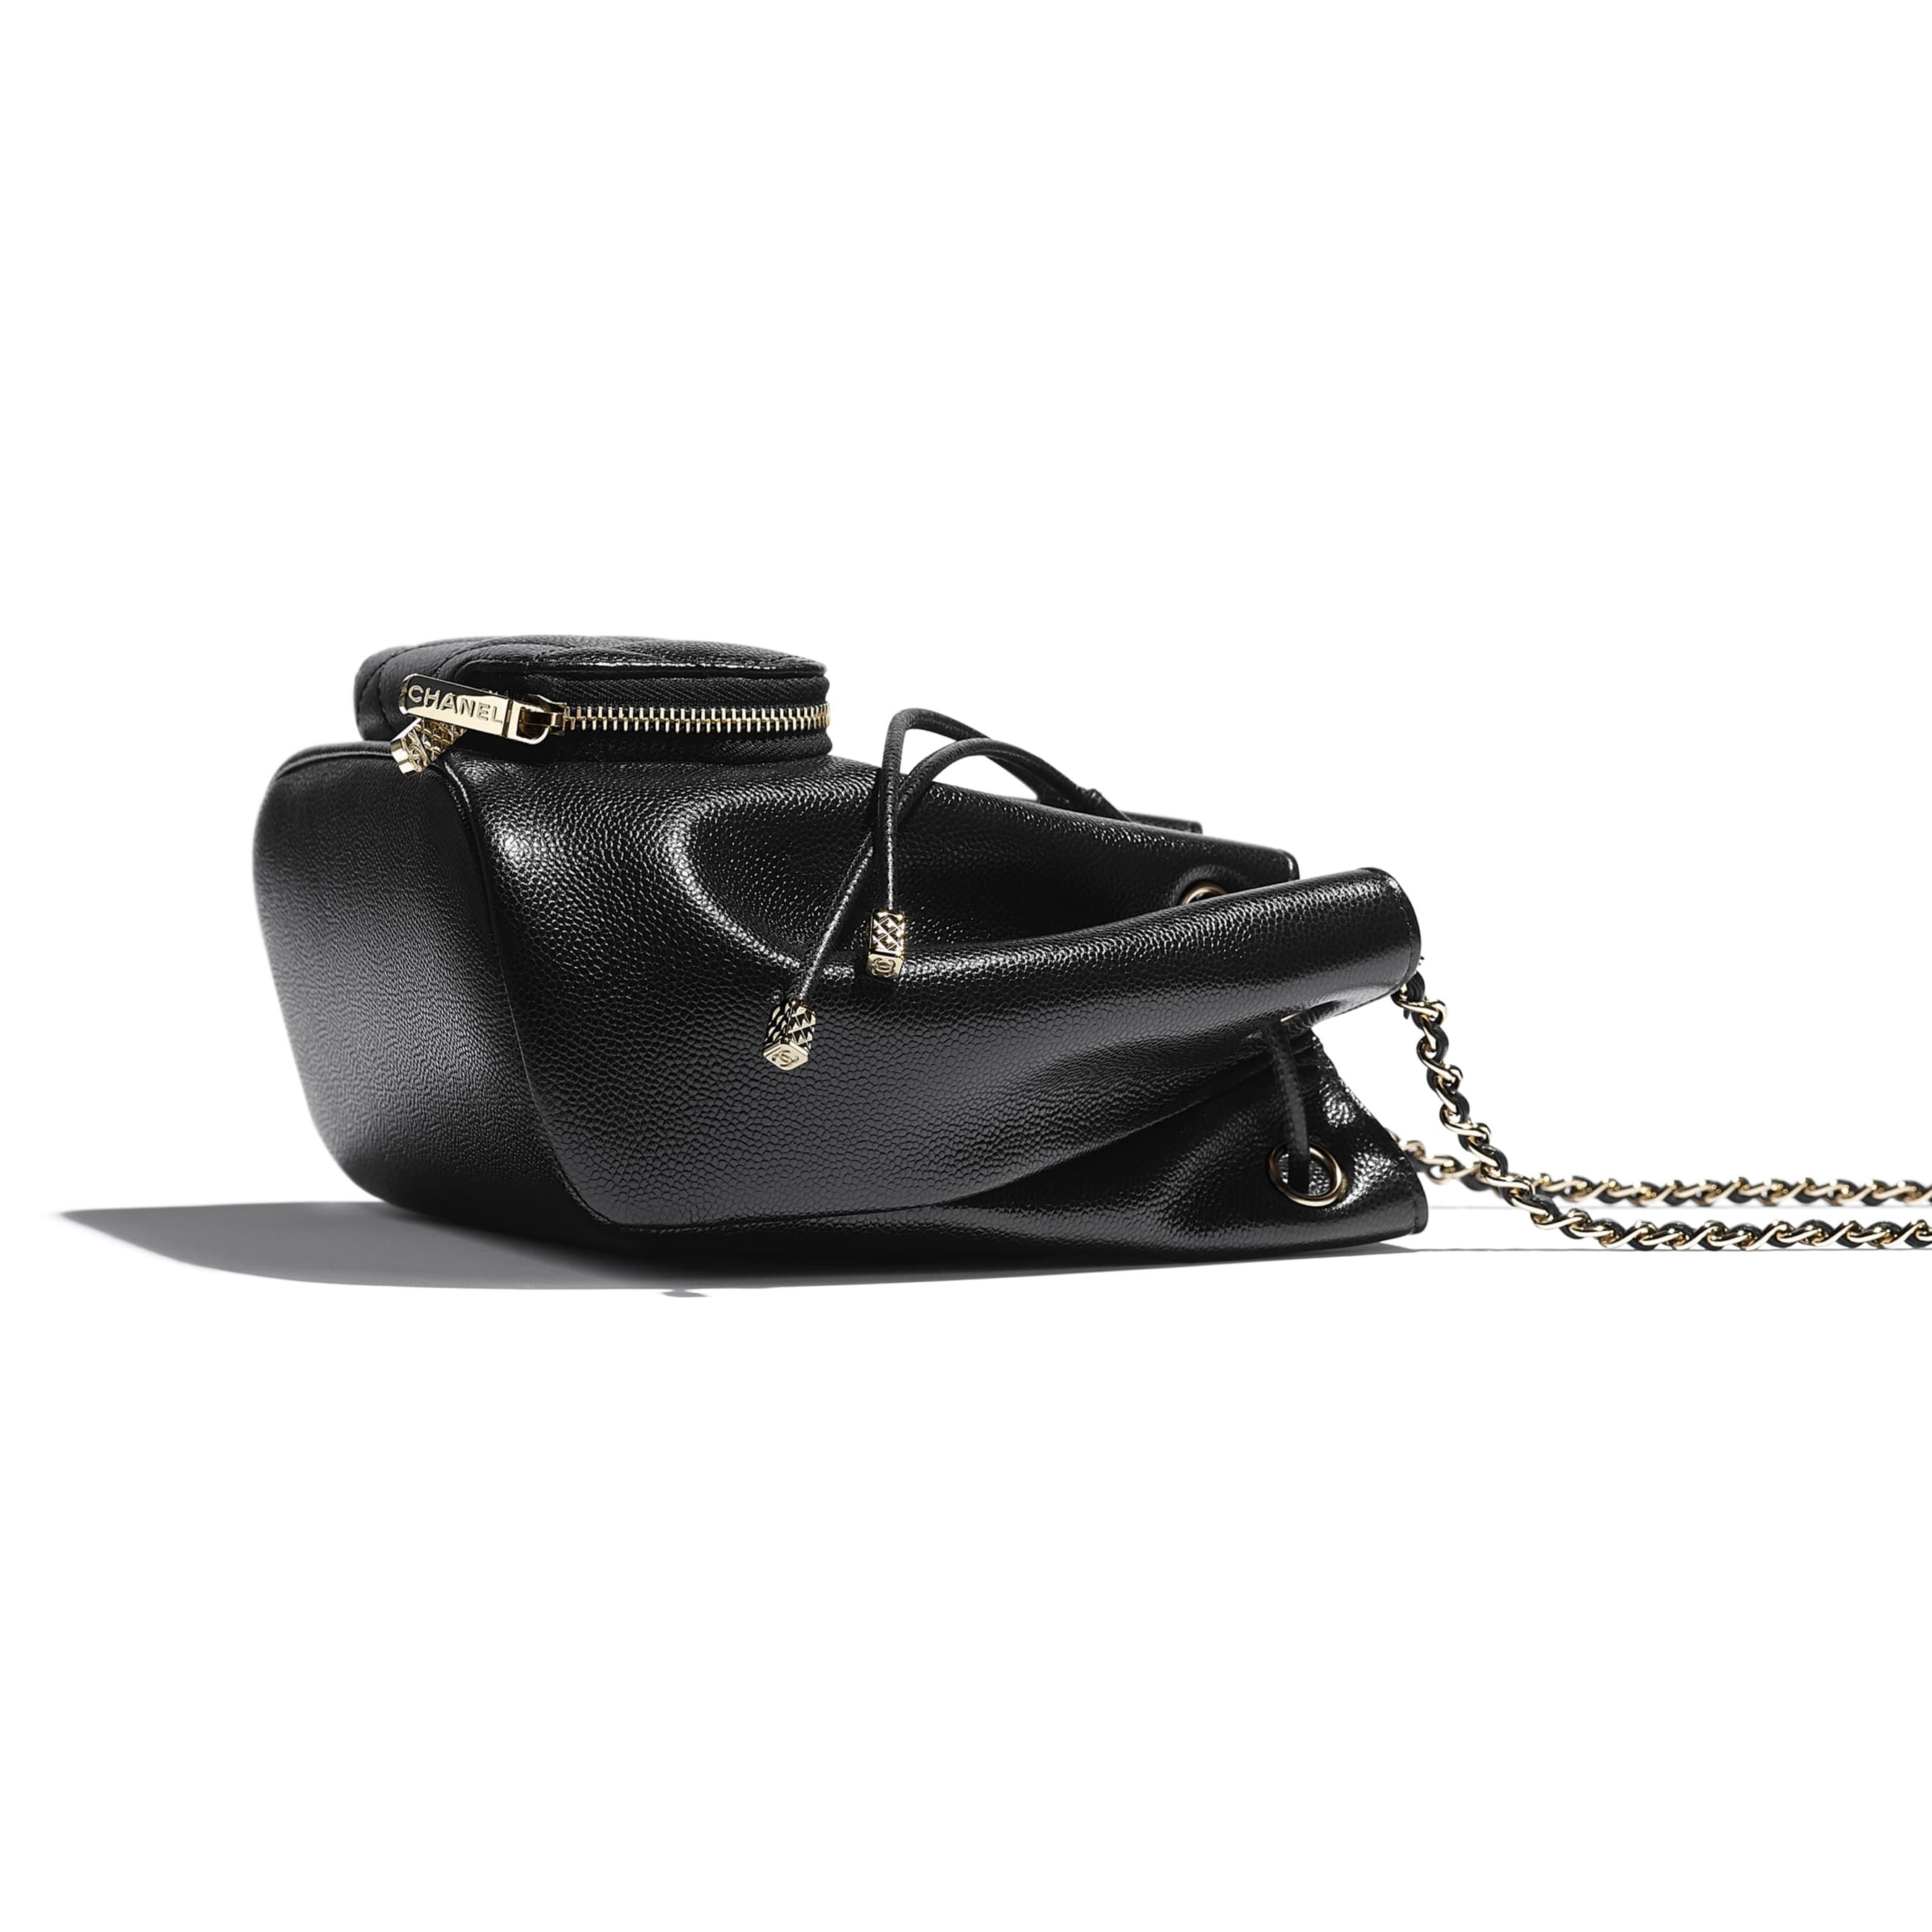 Drawstring Bag - Black - Grained Calfskin & Gold-Tone Metal - CHANEL - Extra view - see standard sized version